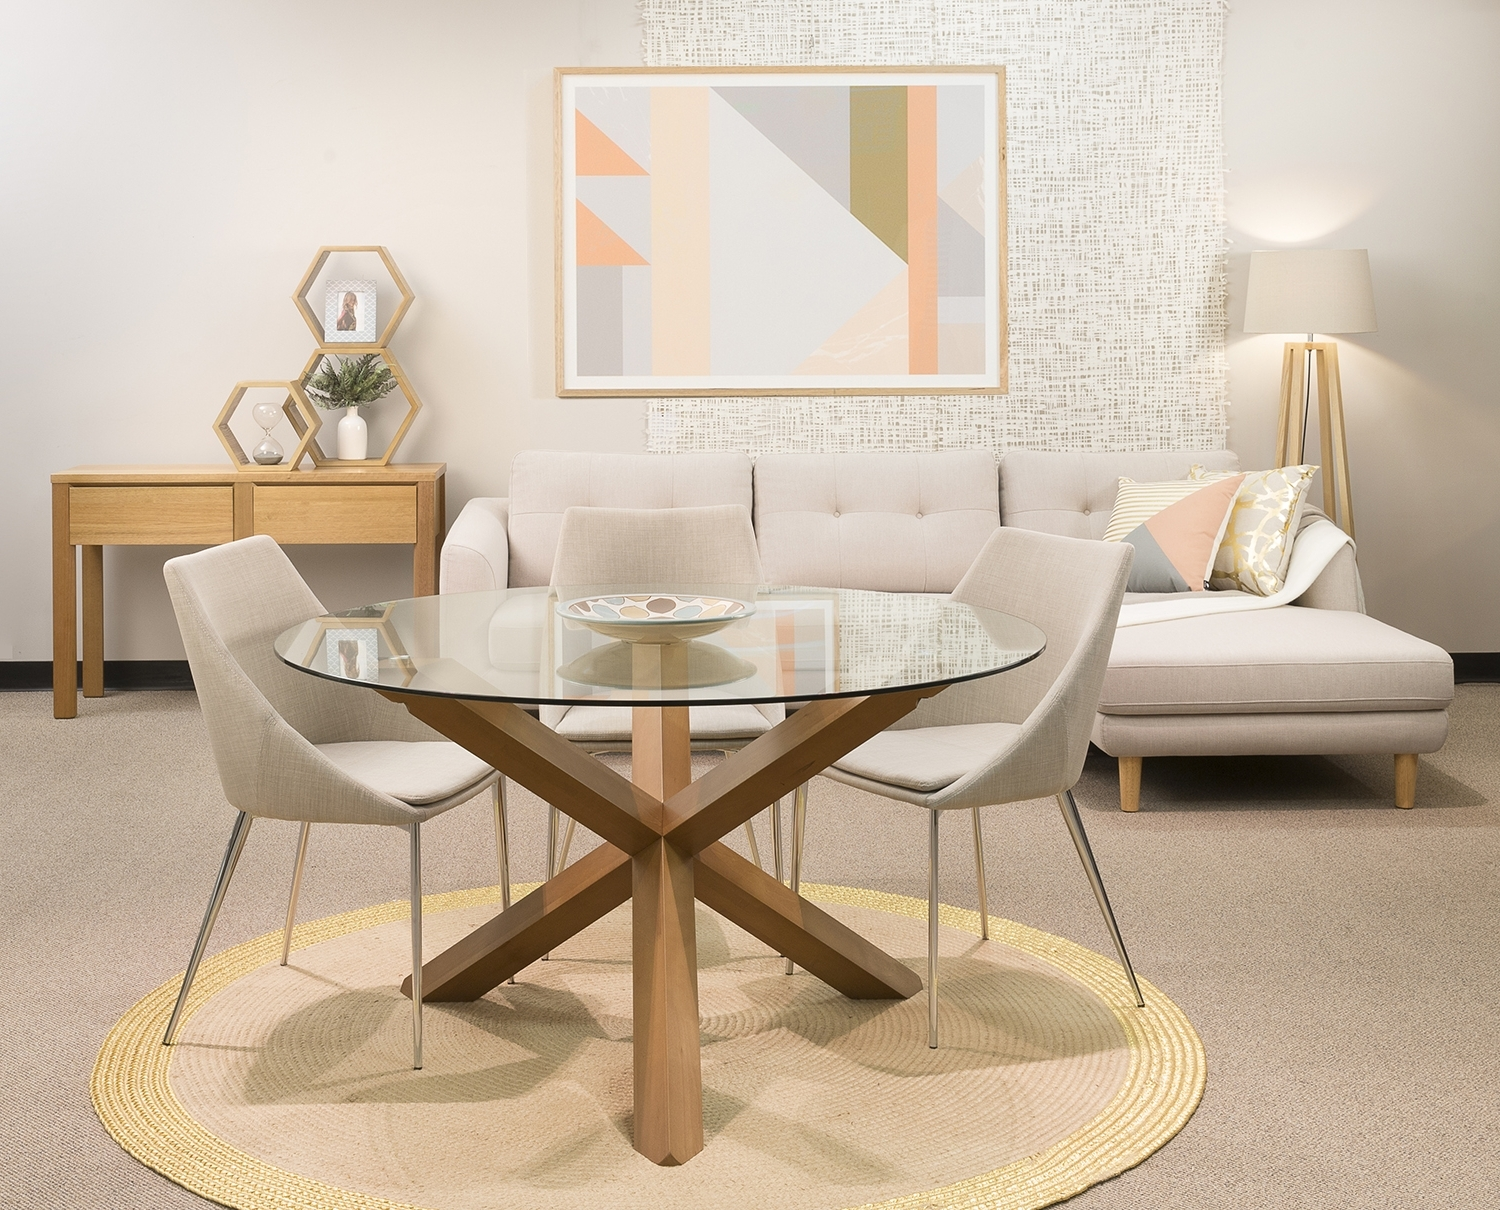 Dezign Furniture & Homewares Stores – Sydney Throughout Glass Dining Tables With Oak Legs (View 3 of 25)